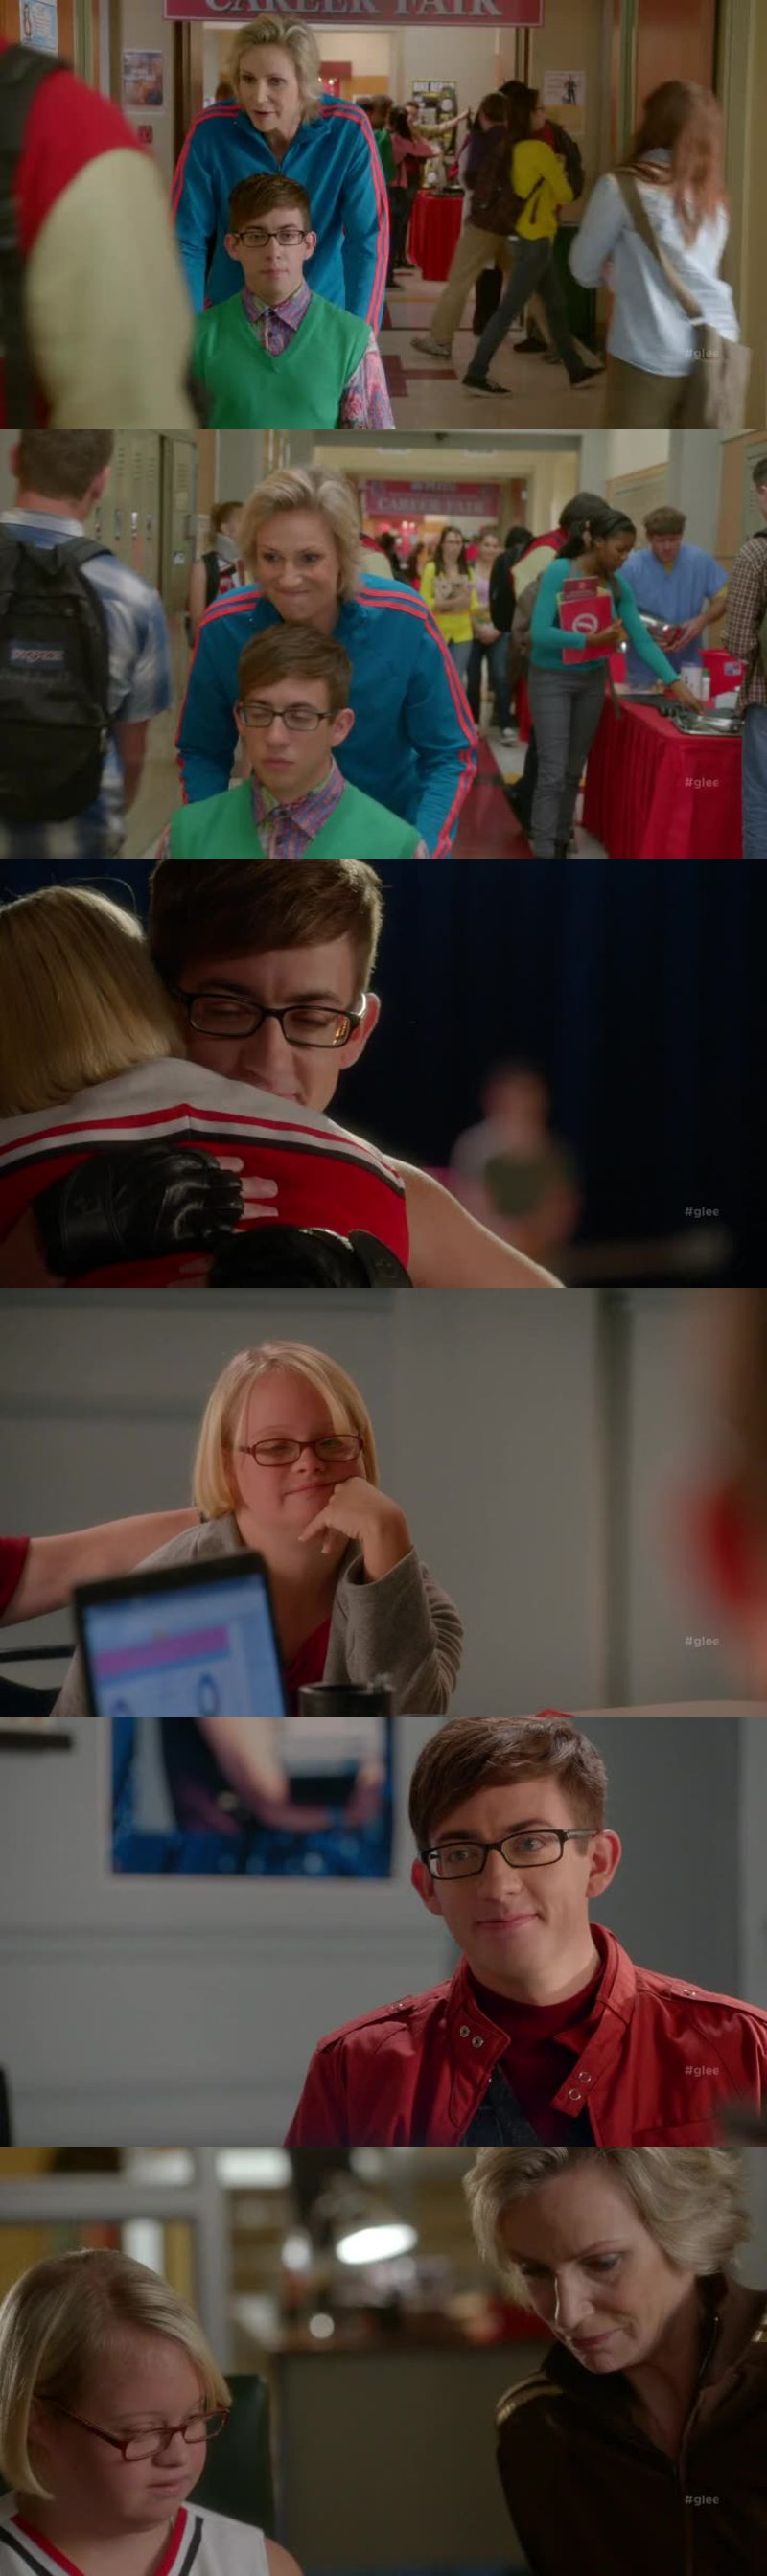 Sue and Artie were so adorable with Becky!! ❤️